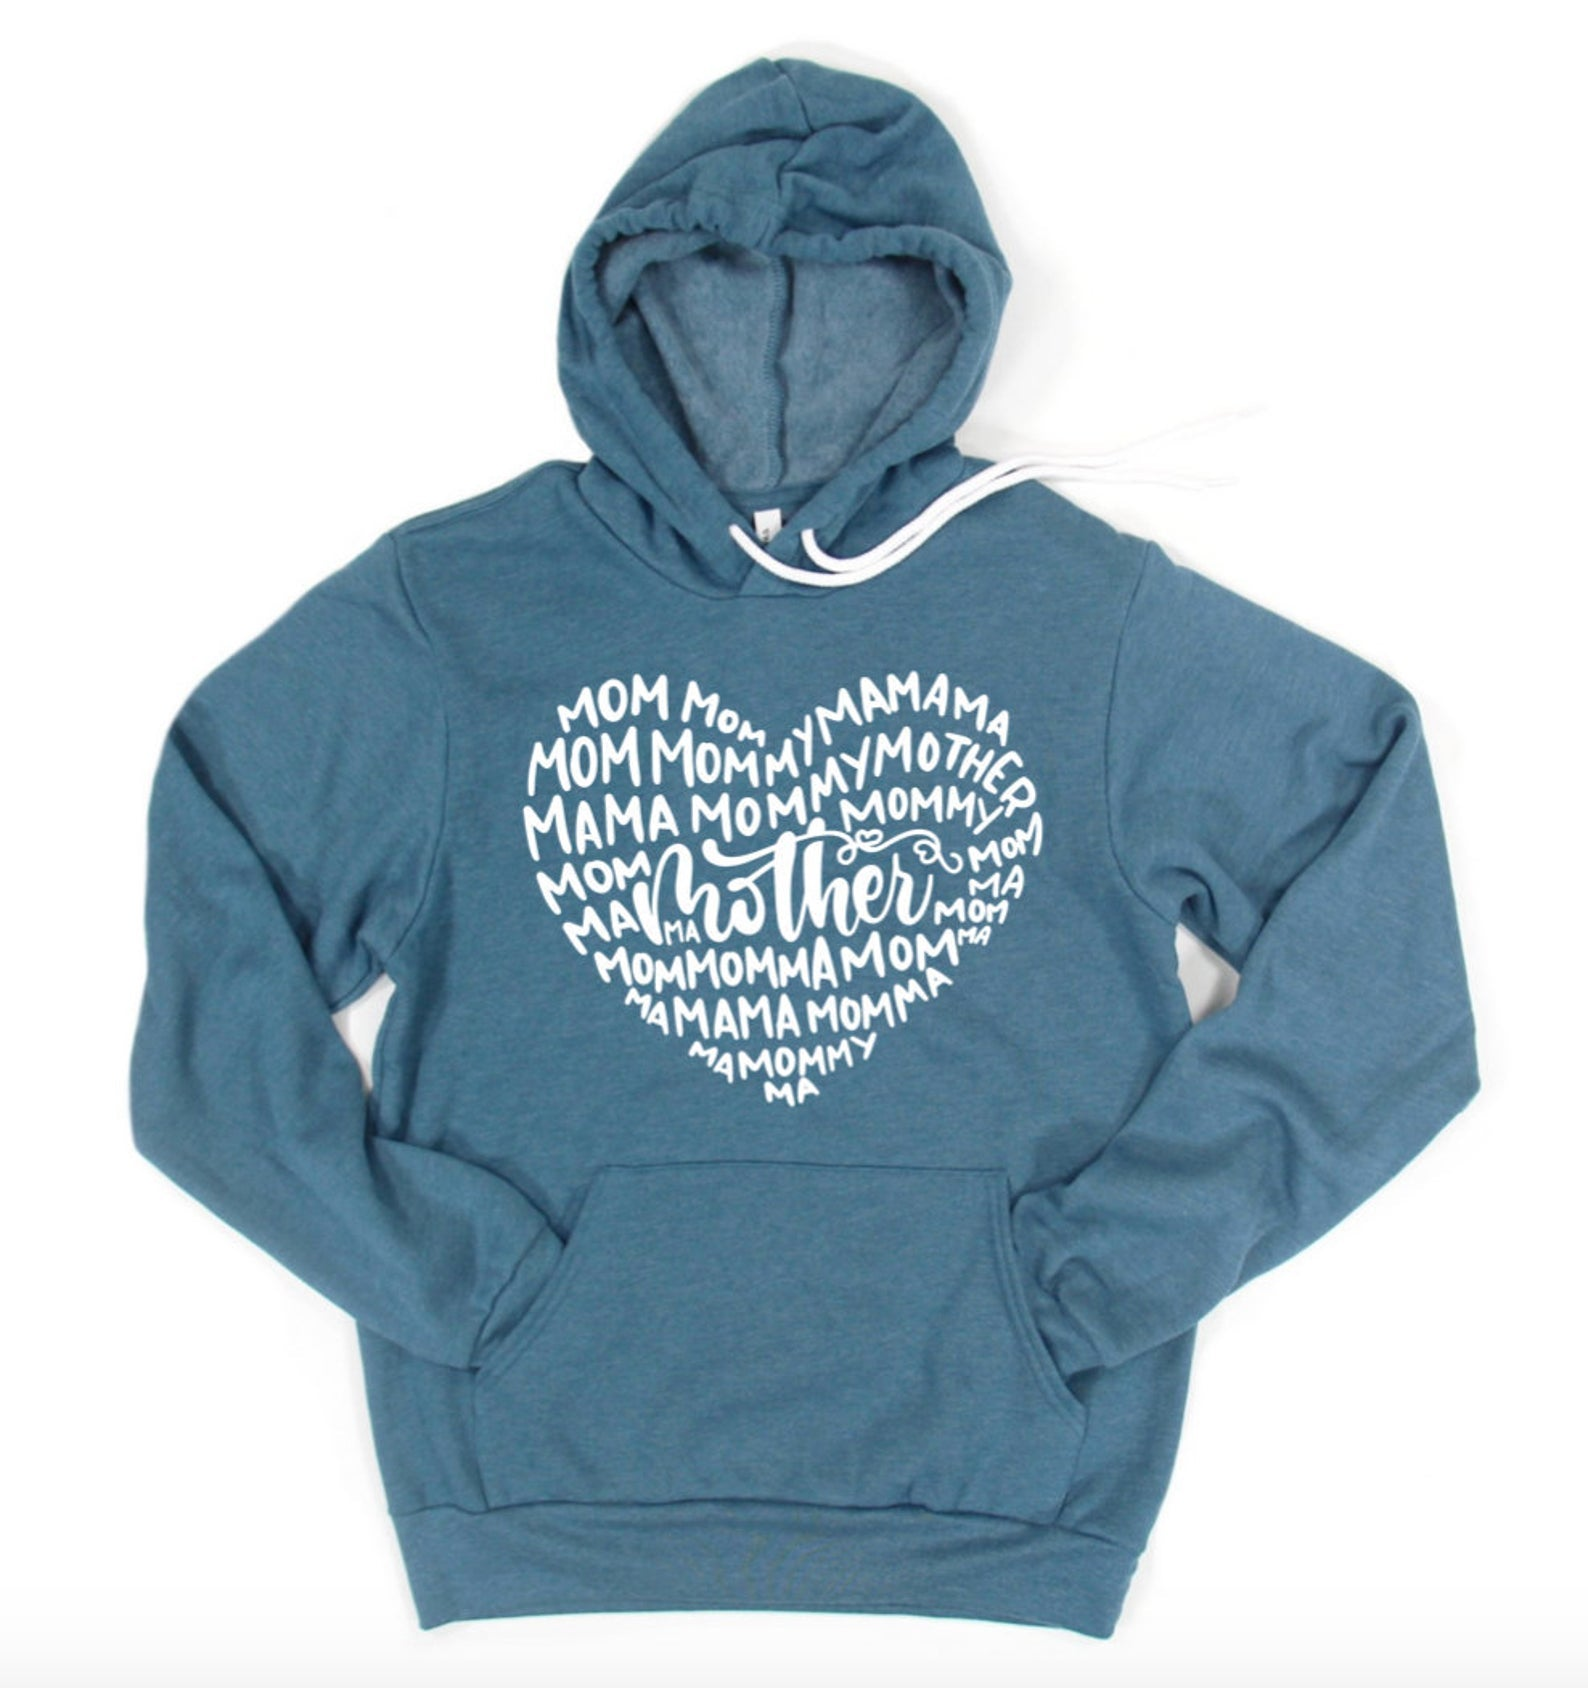 Mama Mom Mother Mommy Momma Hoodie Pullover Sweatshirt - Mom Hoodie - Gift For Mom - Mother's Day Gift - Best Mom Gift